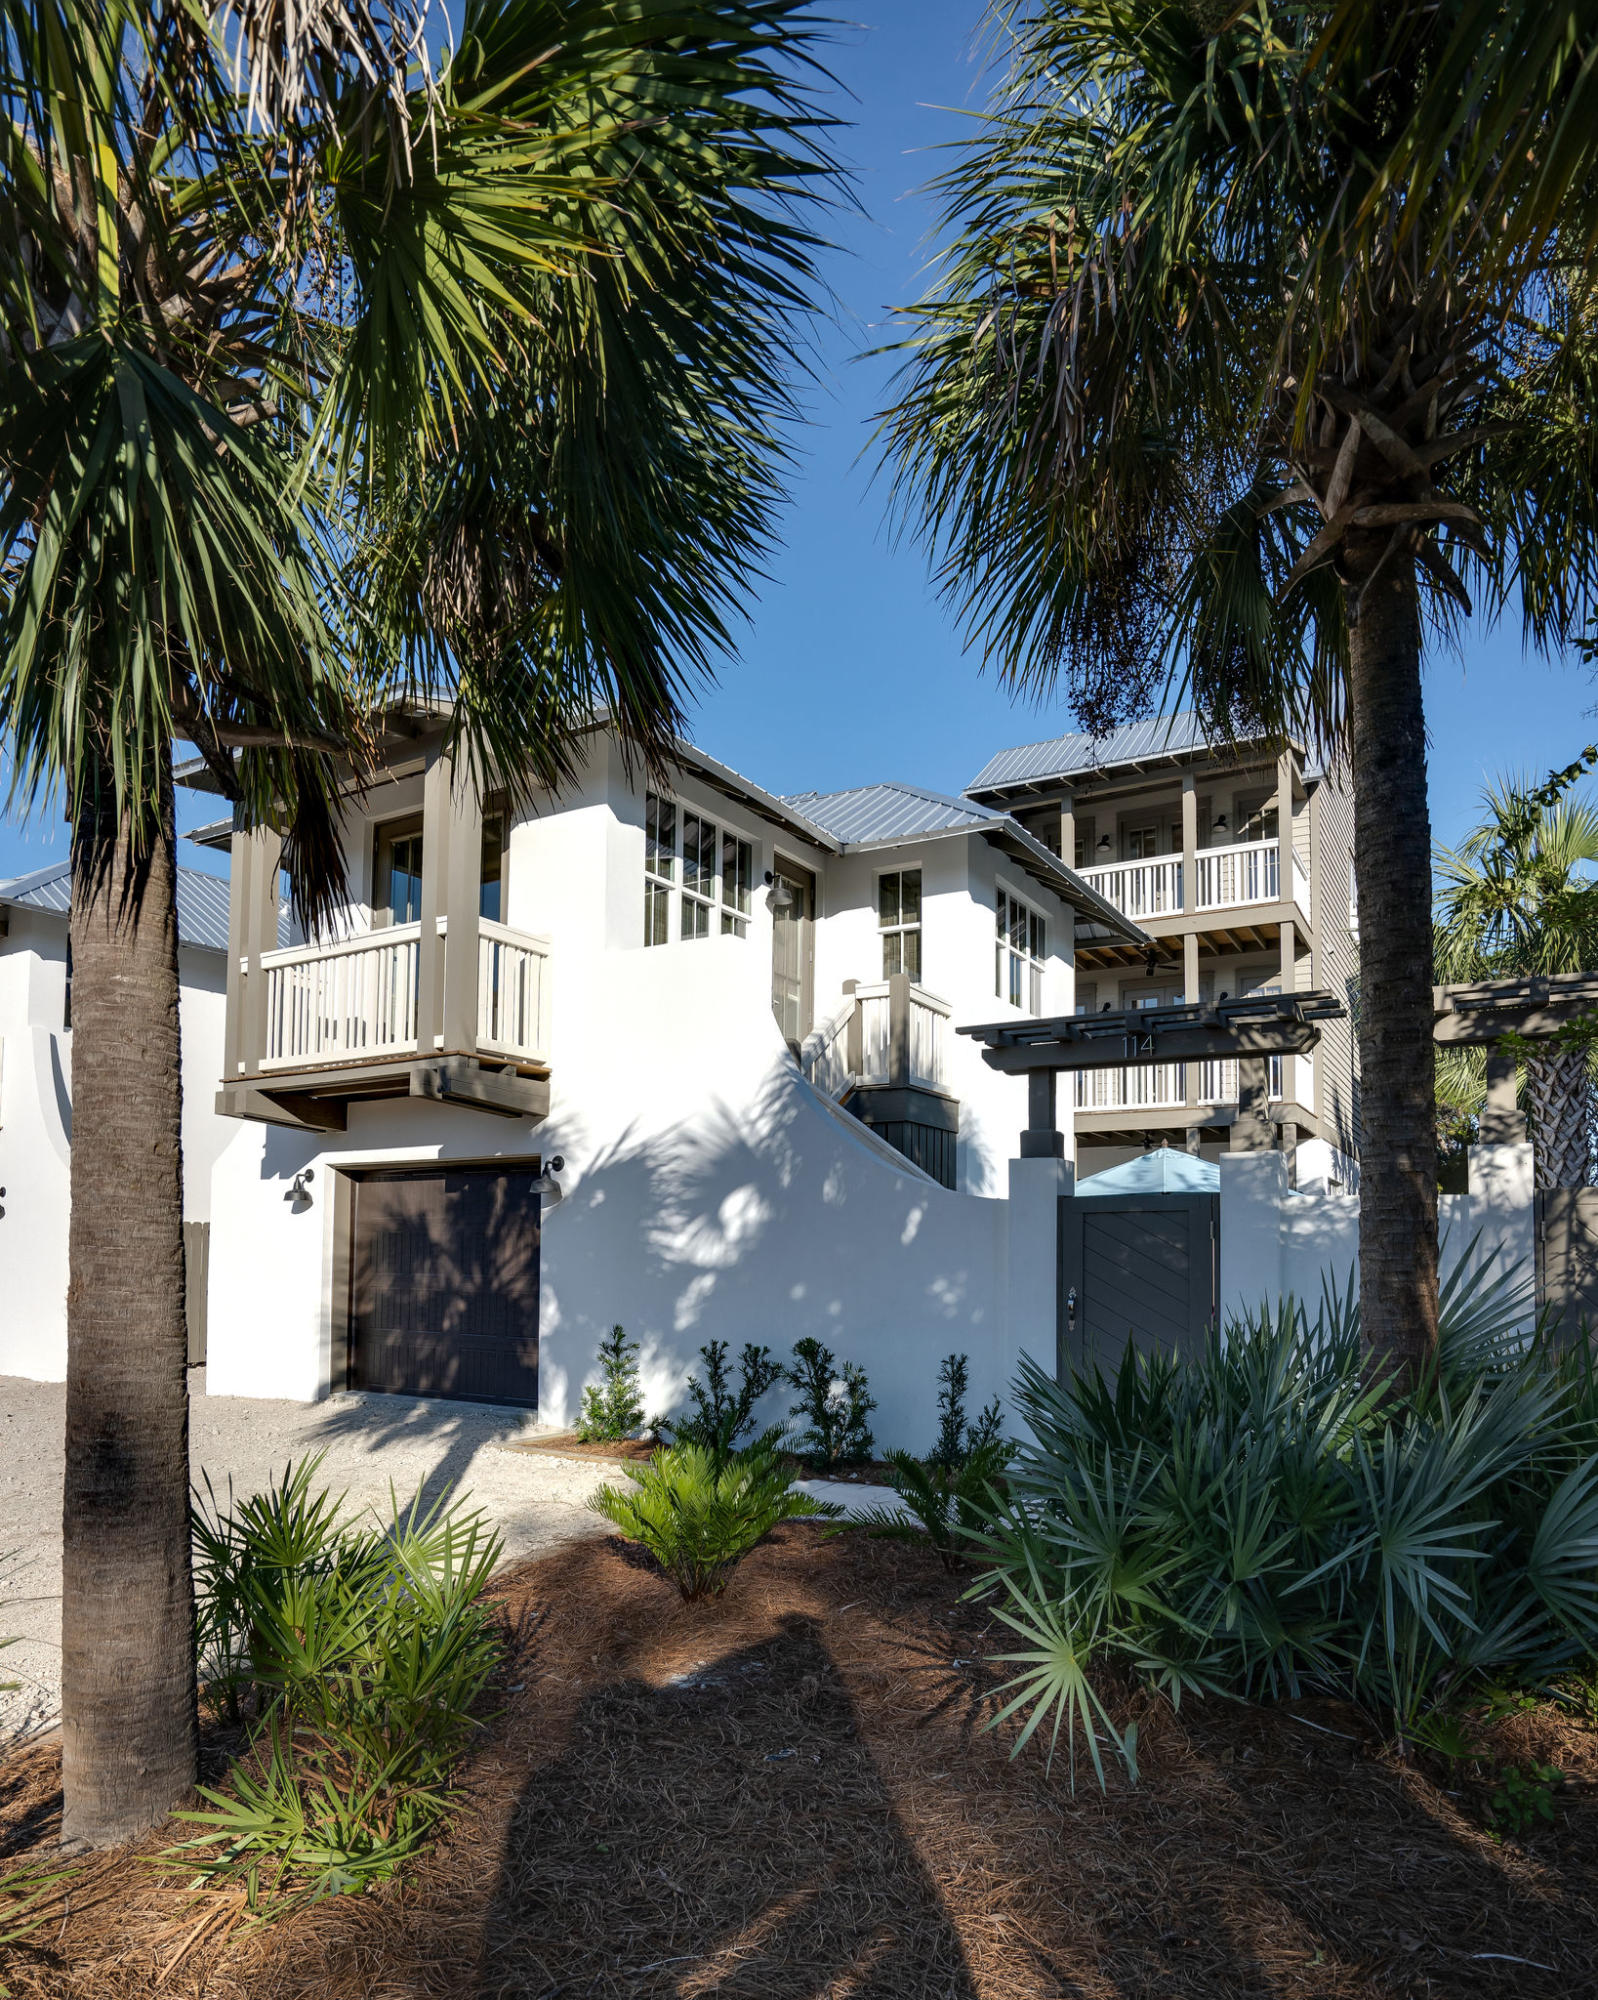 122 Winston North,Inlet Beach,Florida 32461,4 Bedrooms Bedrooms,4 BathroomsBathrooms,Detached single family,Winston North,20131126143817002353000000